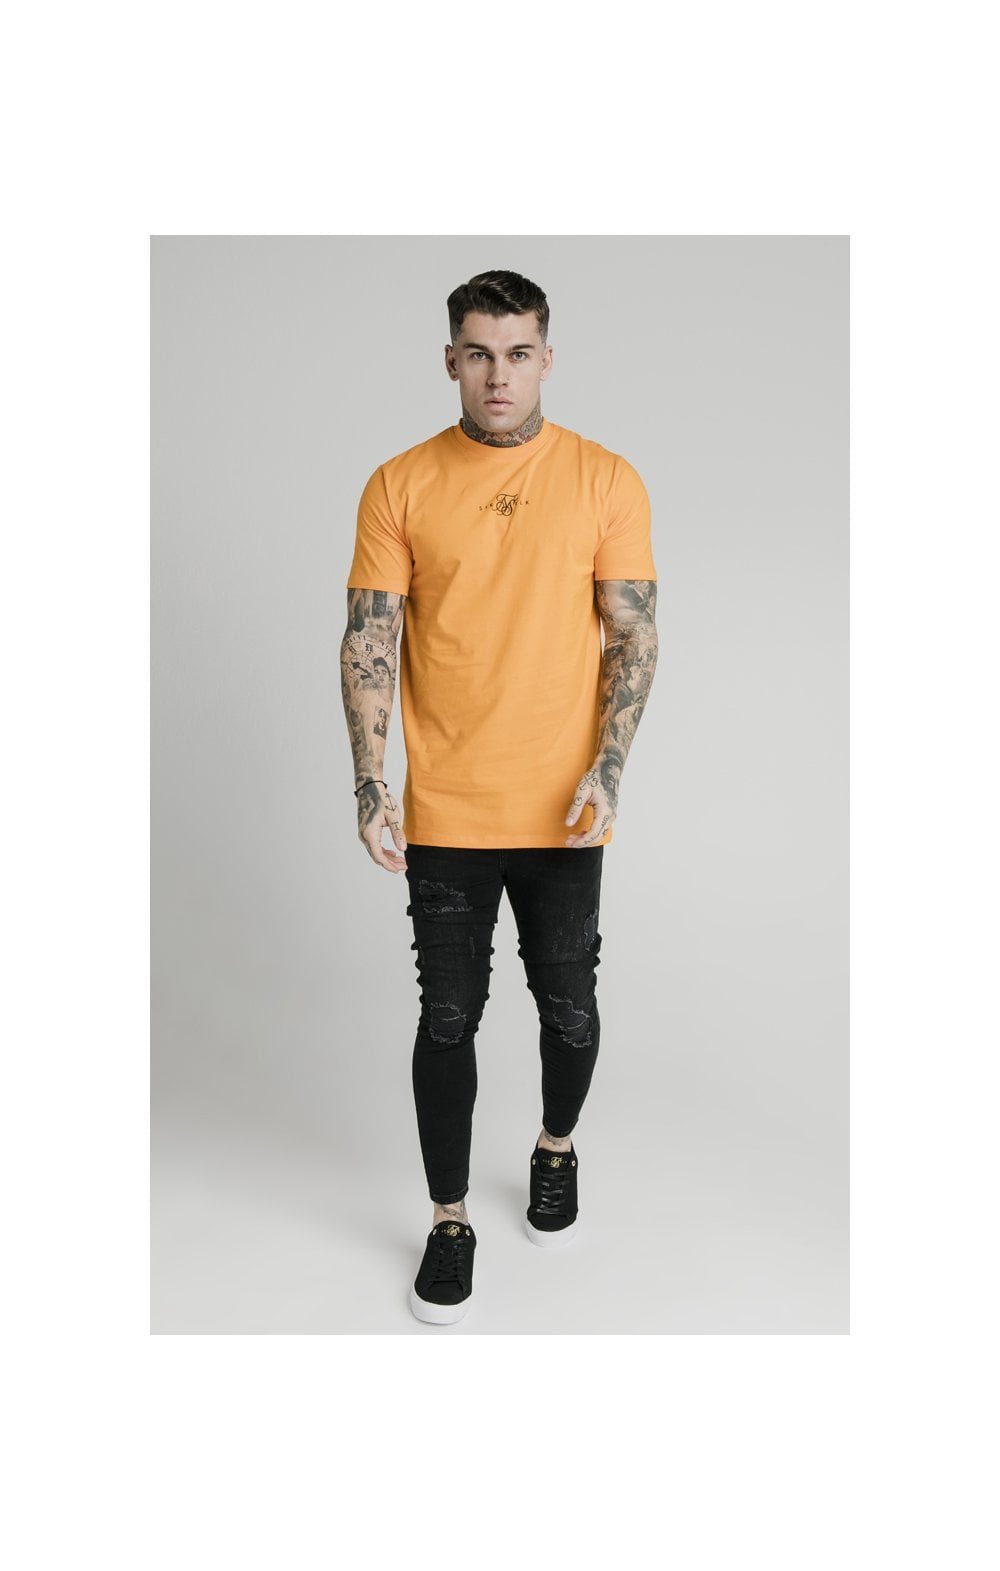 SikSilk S/S Square Hem Tee – Orange (1)